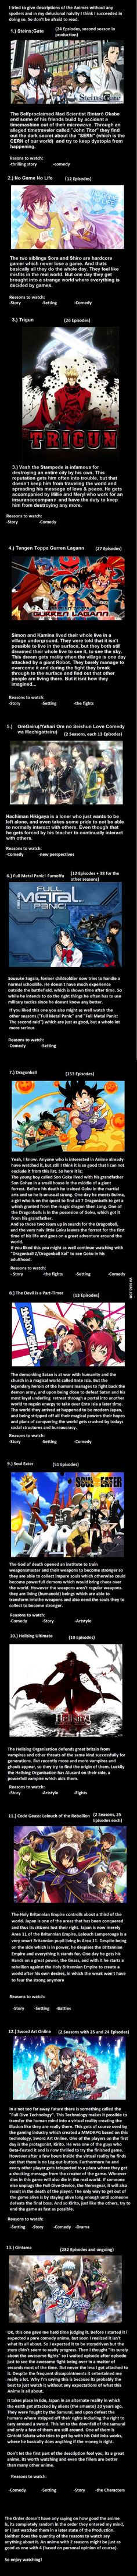 Looking for some Anime?